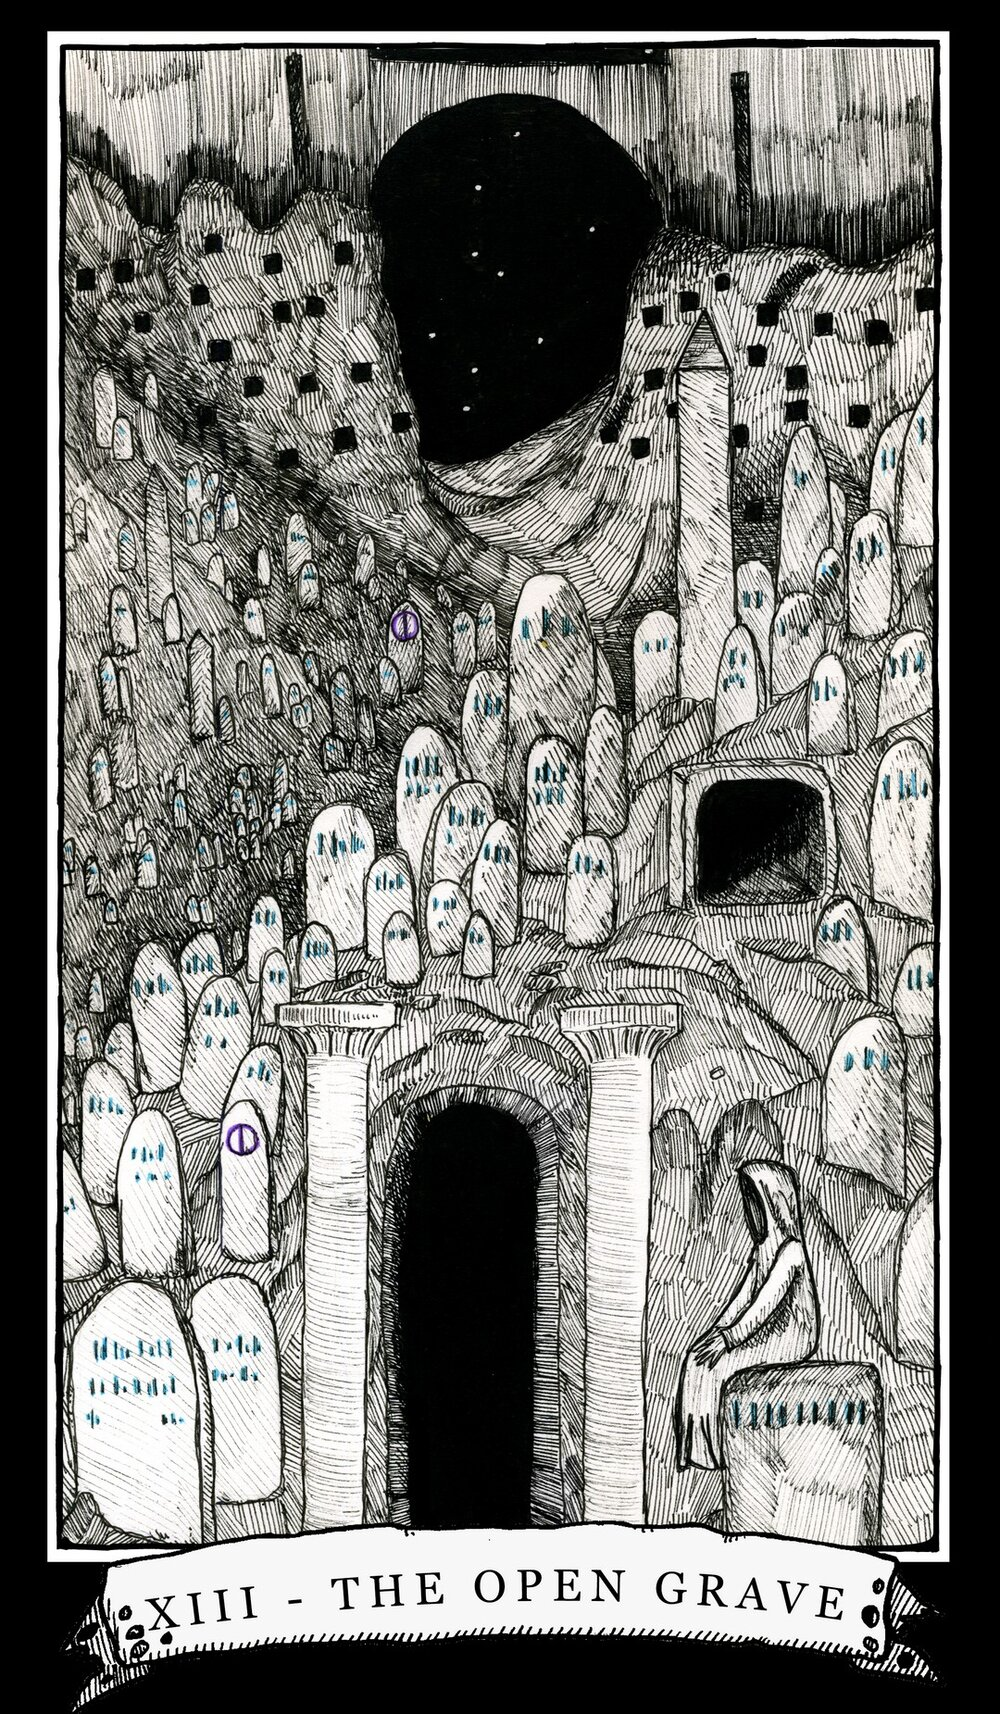 The Grave City of Culumnon